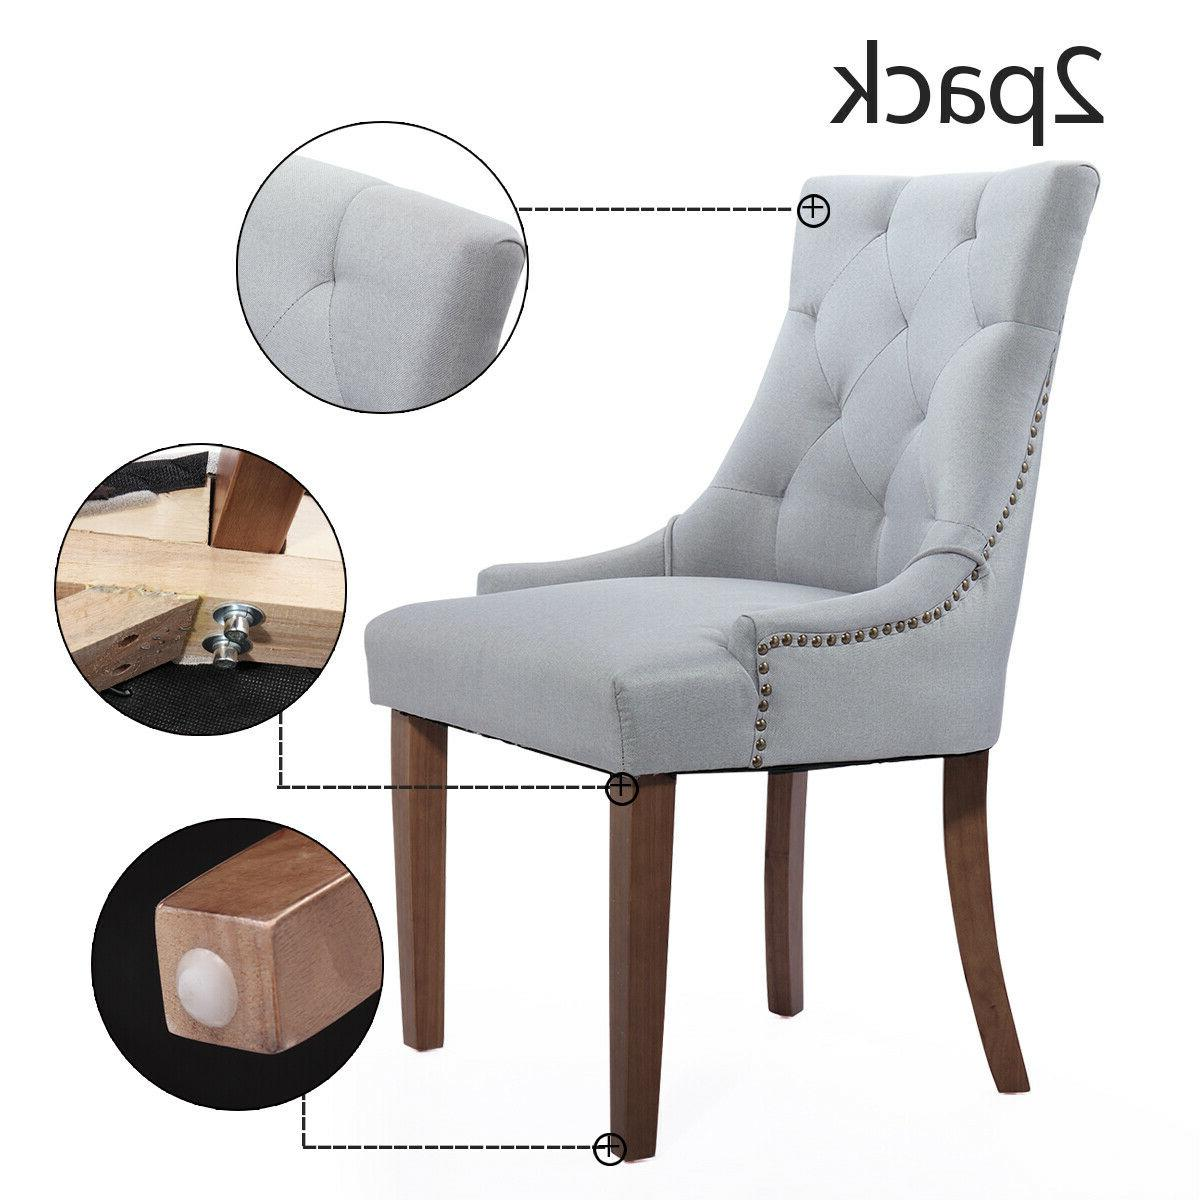 Set of 2 Tufted Dining Chairs Accent Chairs with Legs Gray